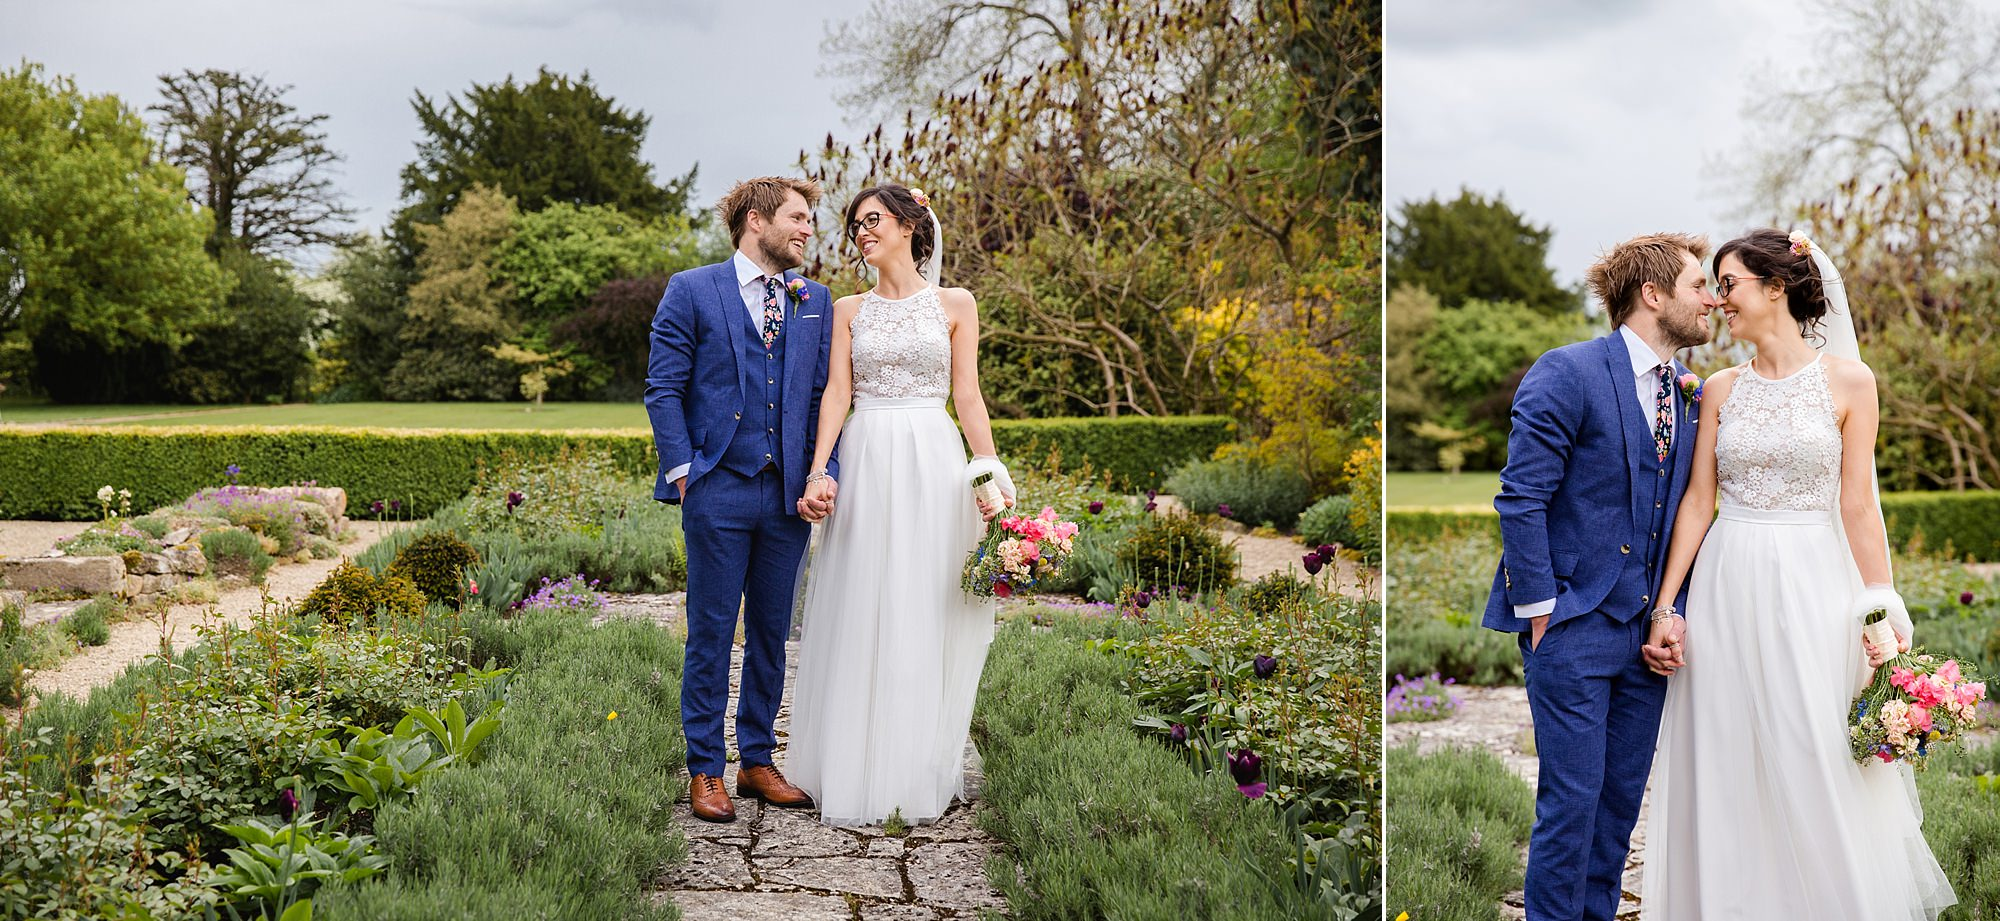 Caswell House Wedding a bride and room laugh together in the gardens